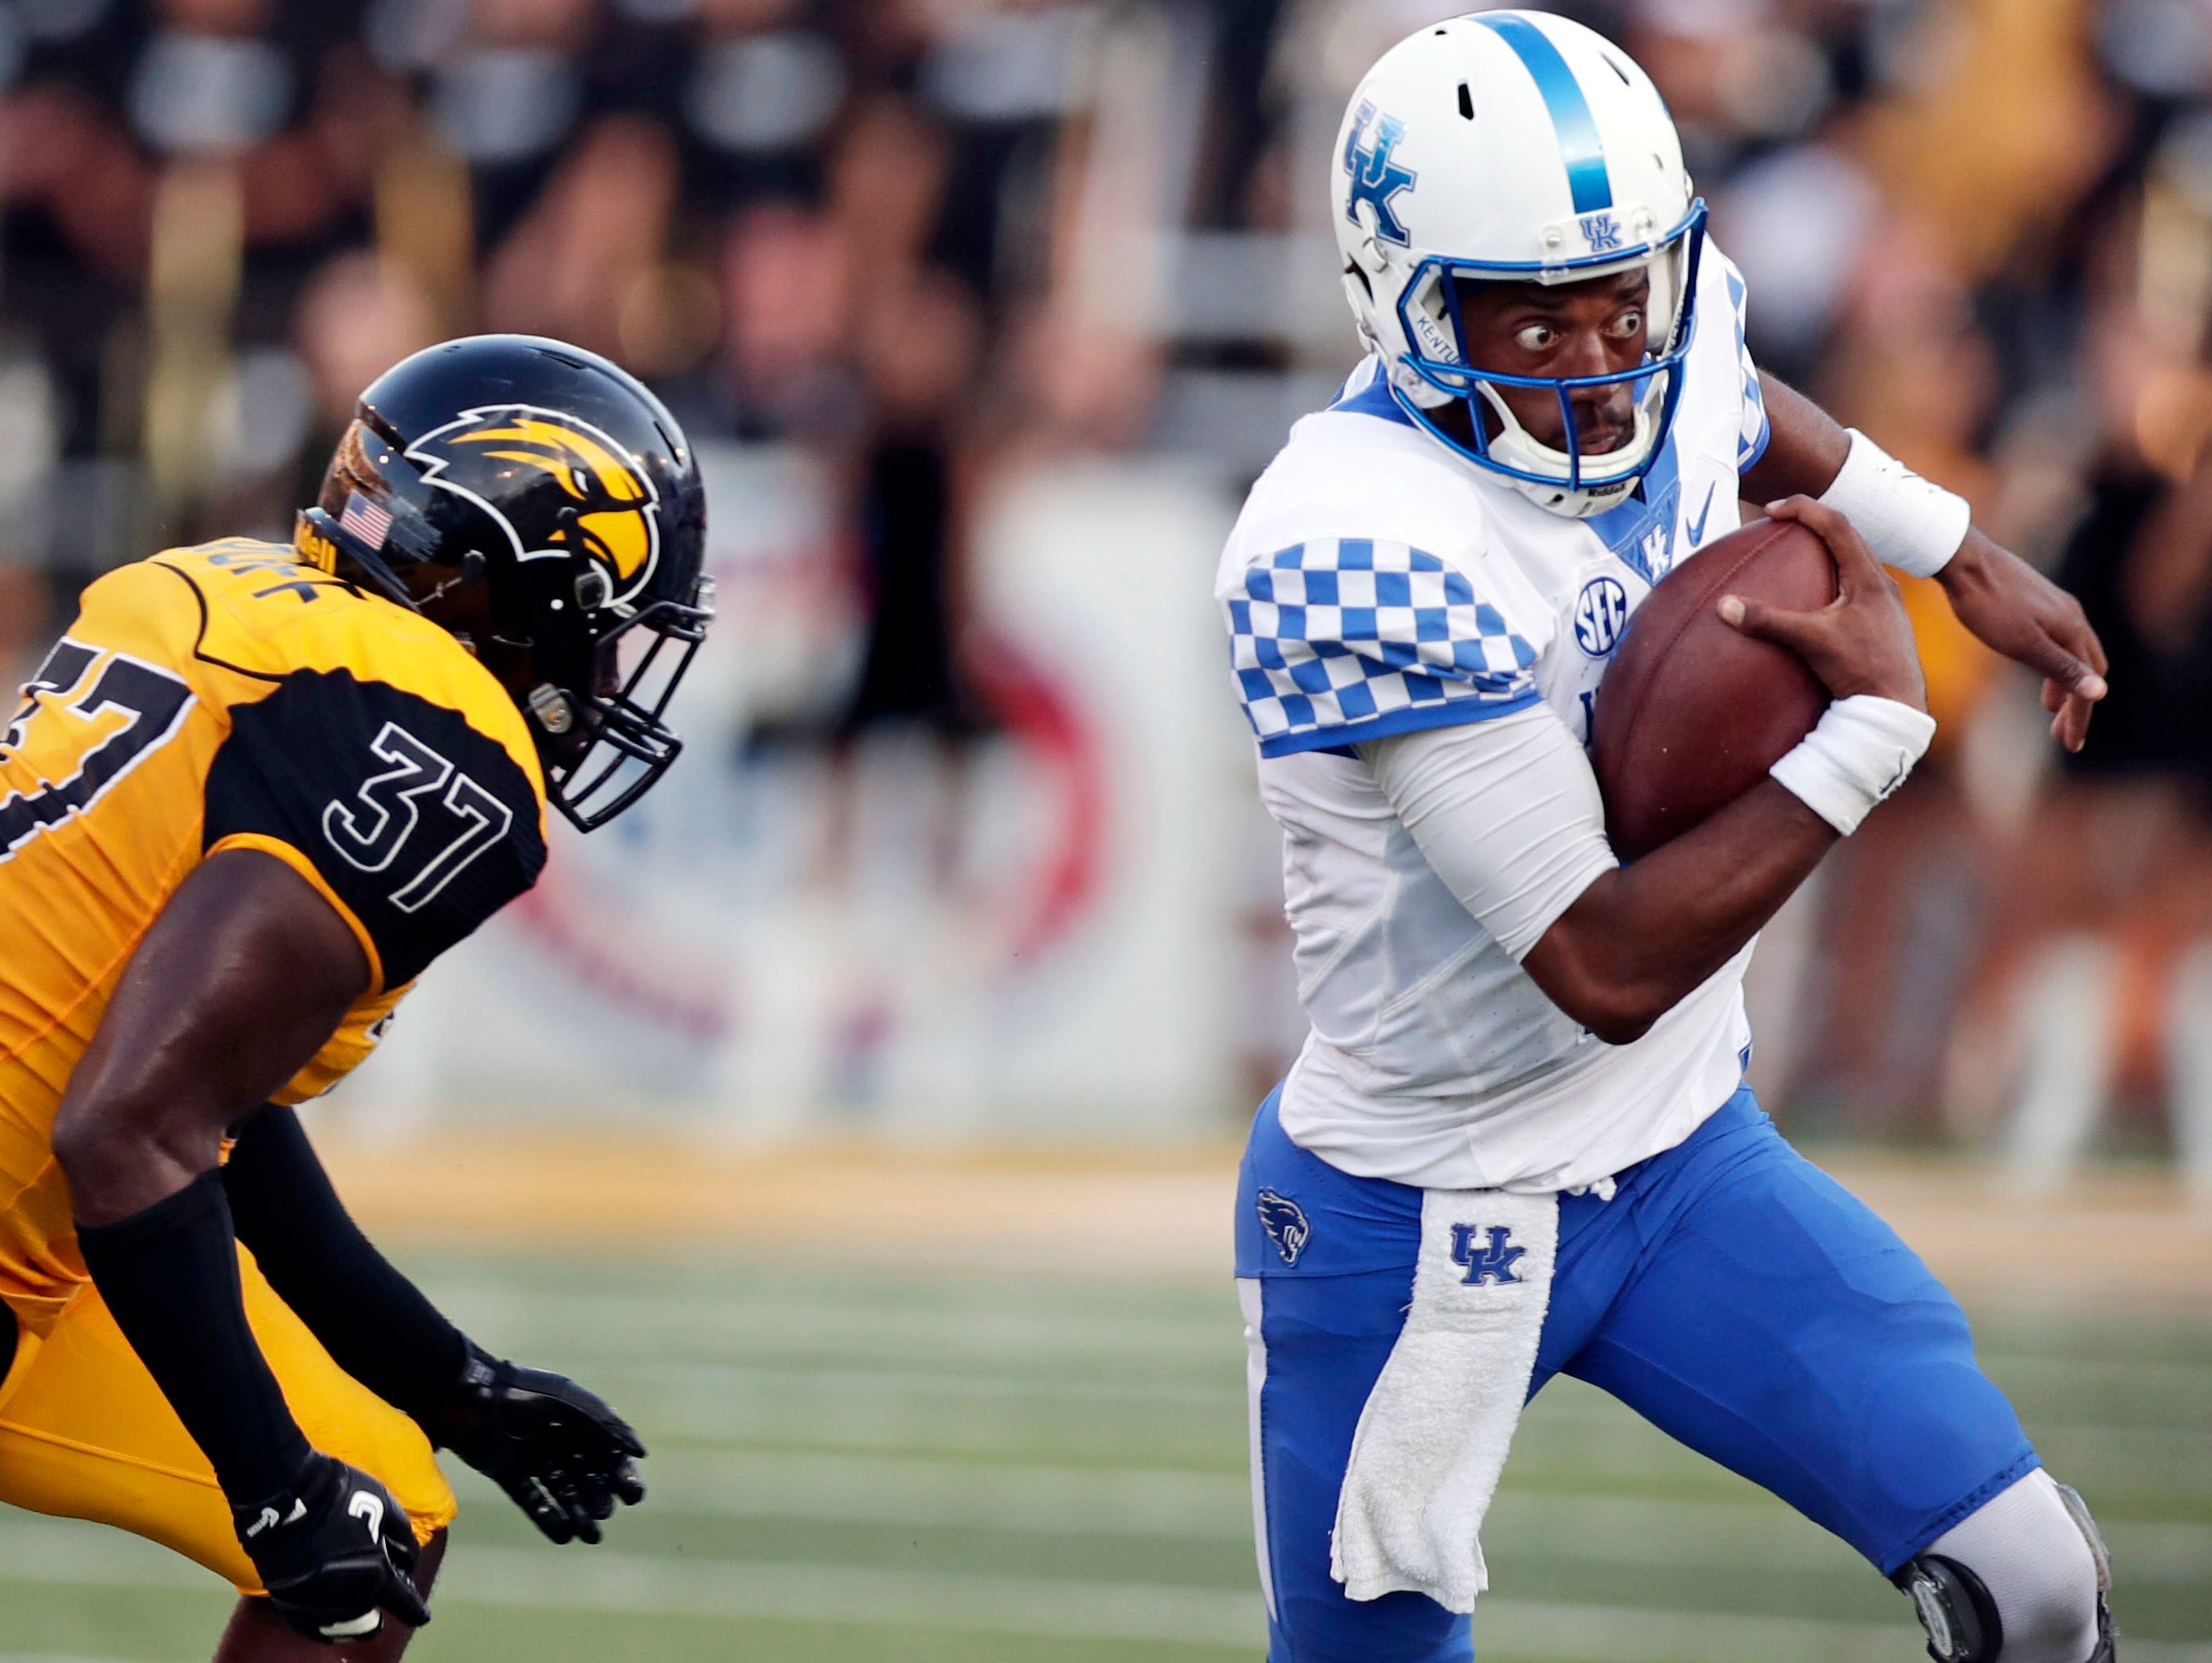 Kentucky quarterback Stephen Johnson (15) runs away from Southern Mississippi linebacker Sherrod Ruff (37) as he avoids being sacked during the second half of an NCAA college football game against Southern Mississippi in Hattiesburg.